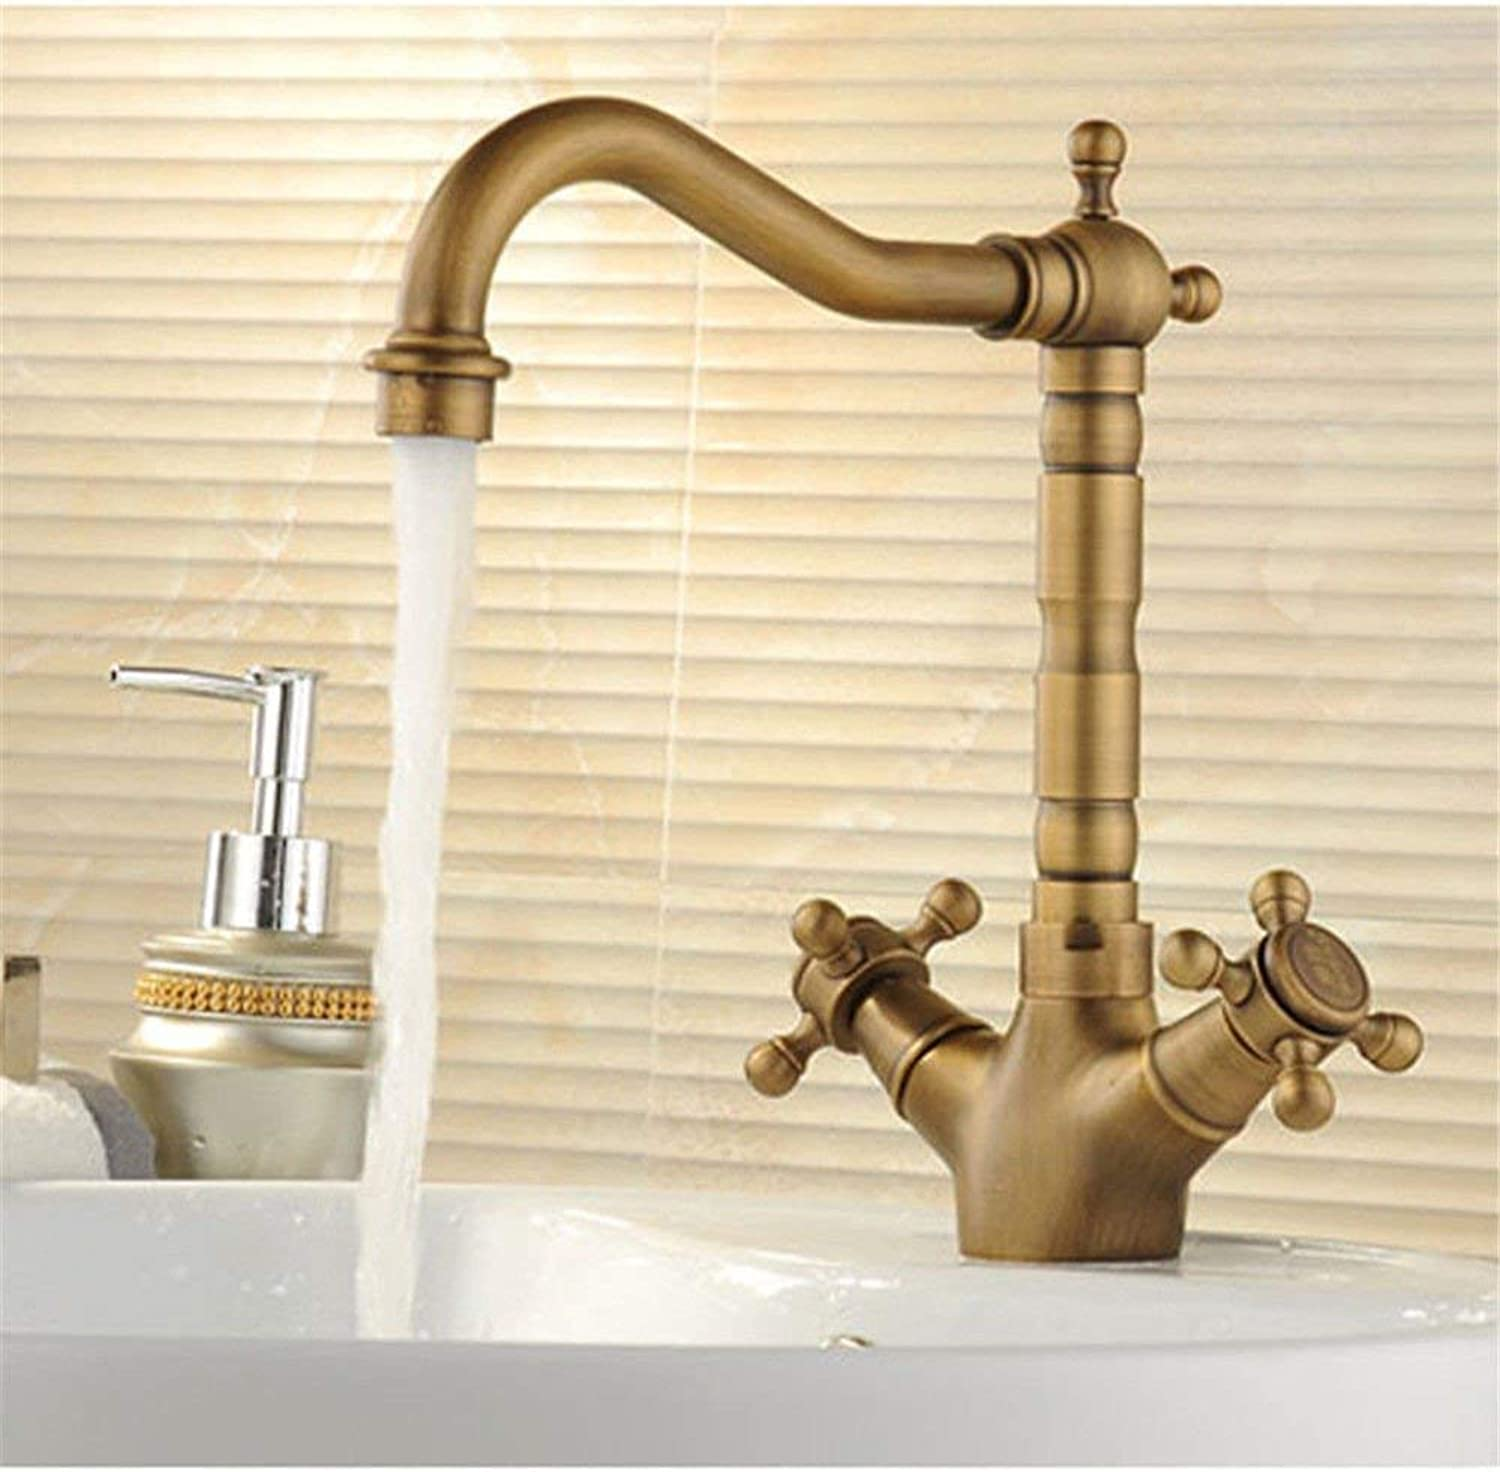 FERZA home Sink Mixer Tap Bathroom Kitchen Basin Water Tap Leakproof Save Water Basin-Wide Antique Copper Cold Water Bathroom Sink B (color   A)